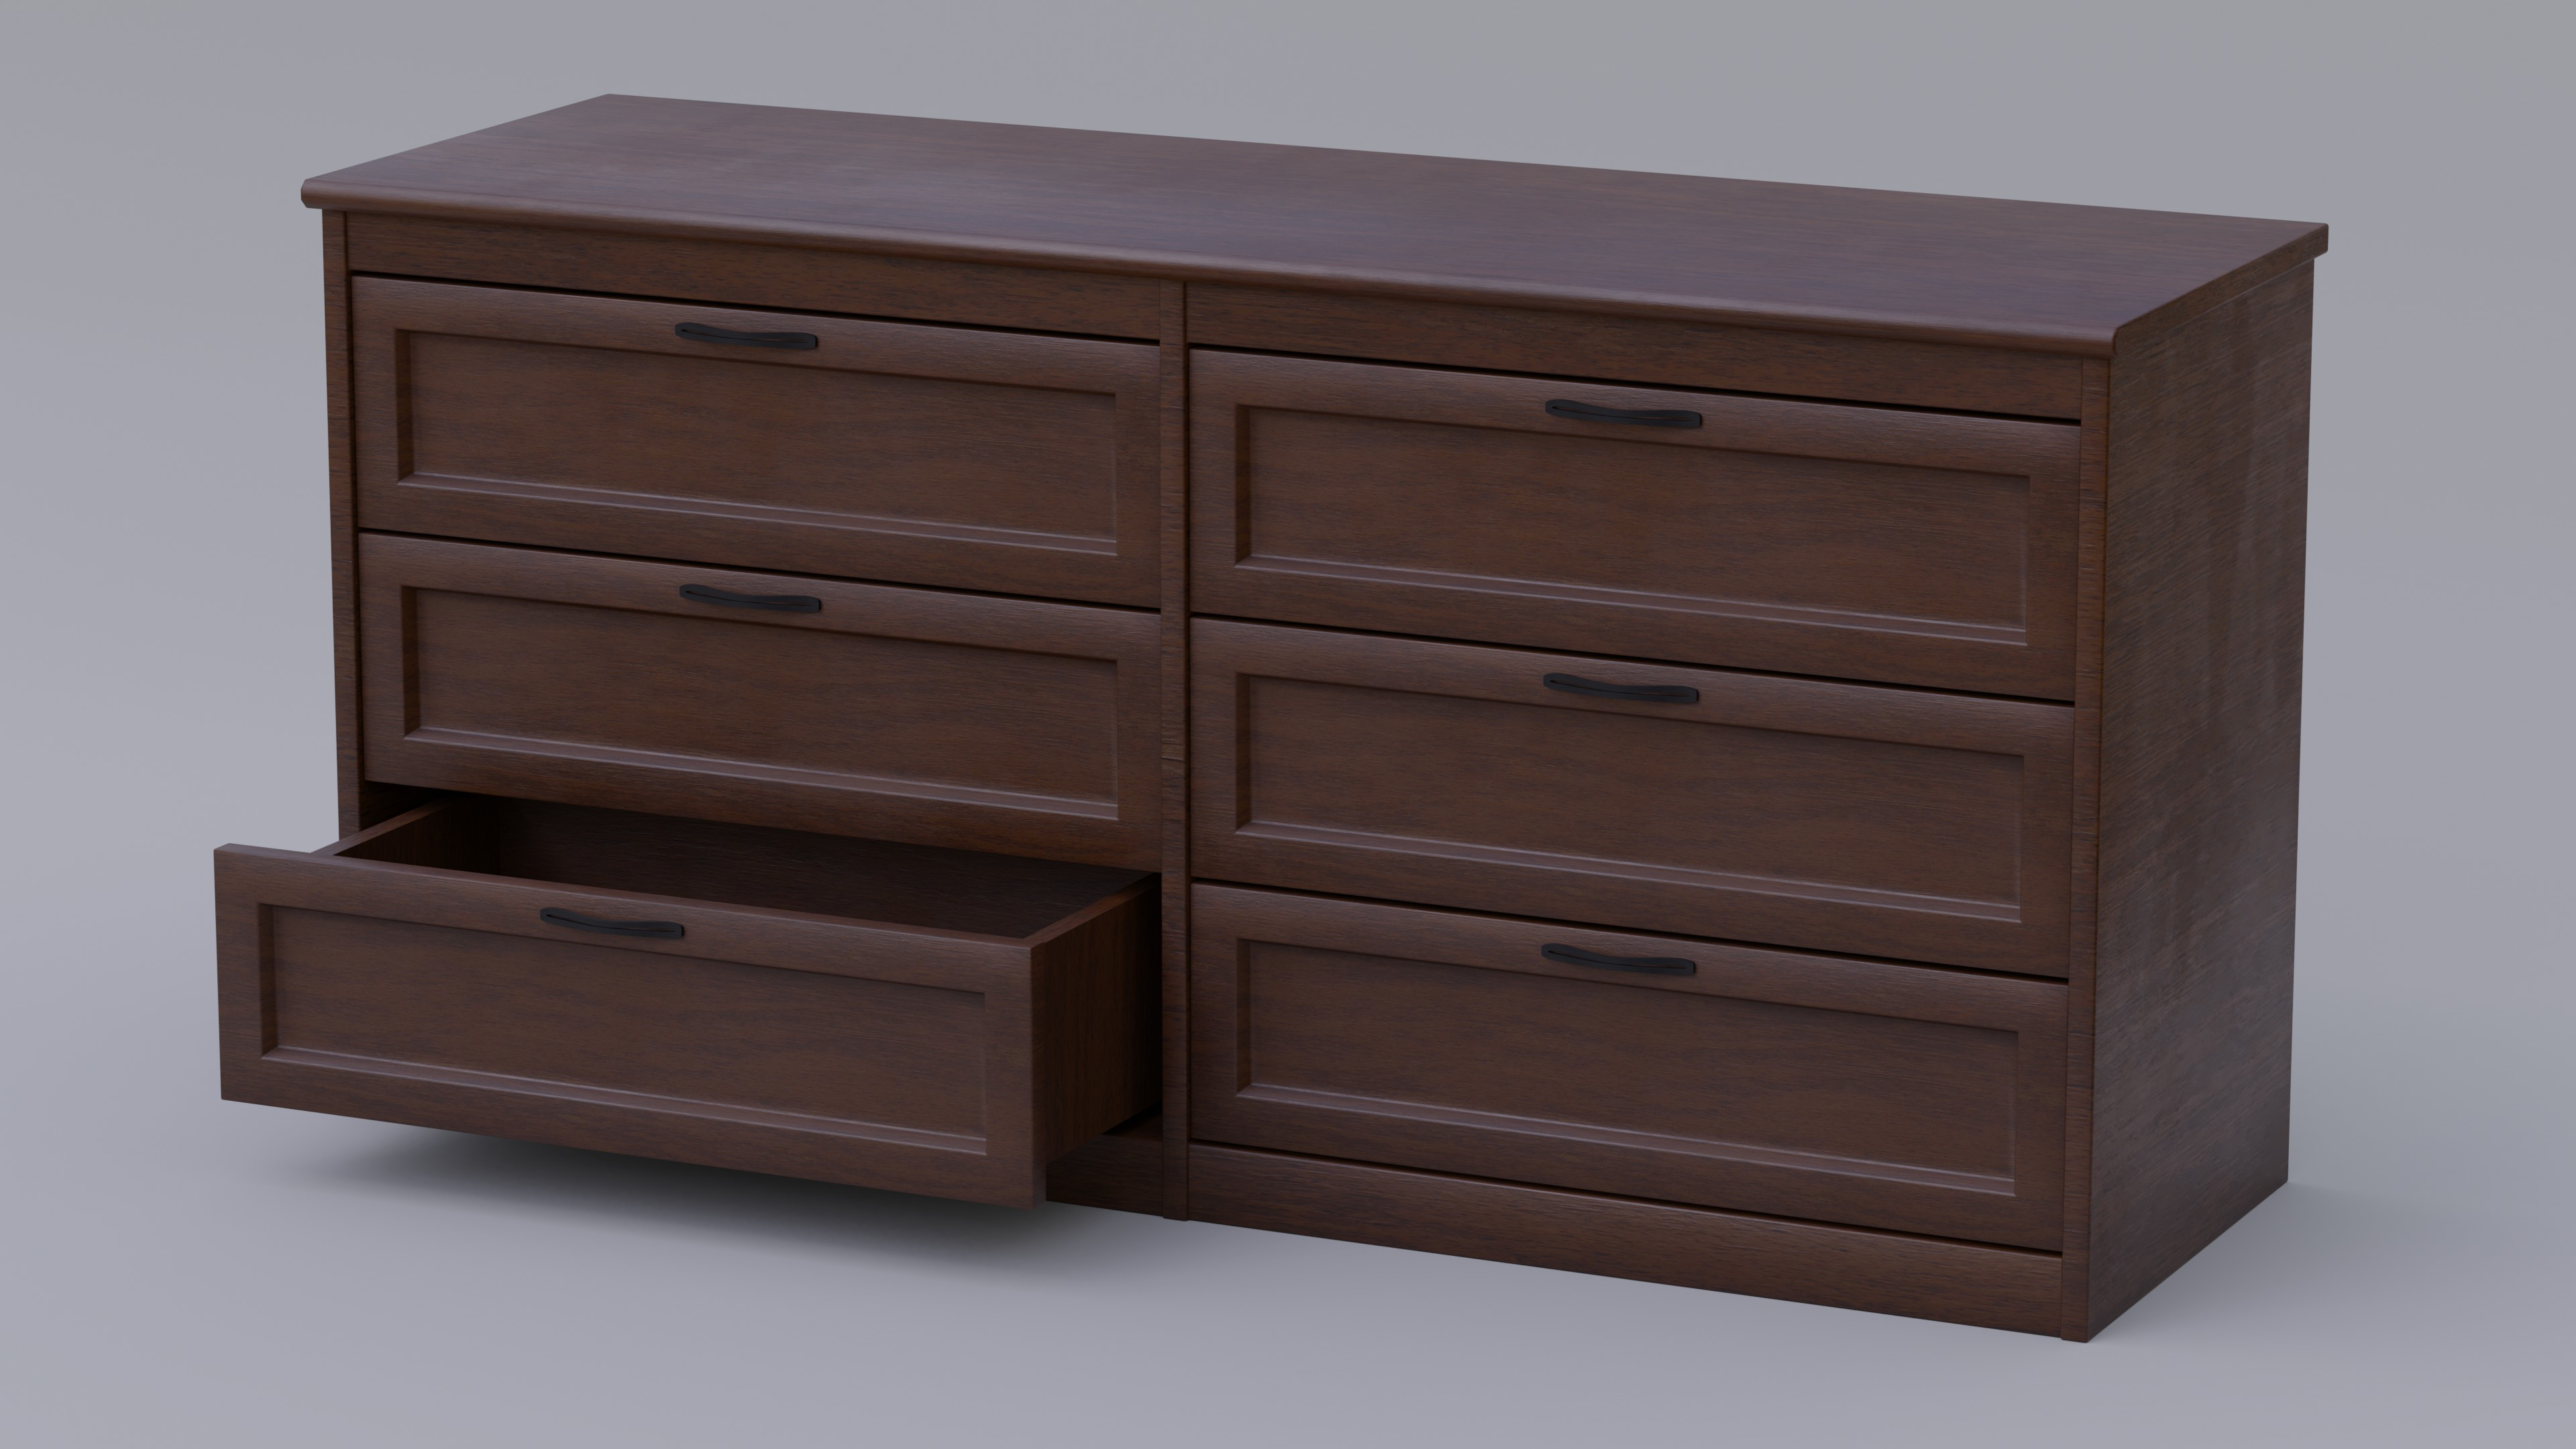 Dark Wood Dresser With Fully Modelled Drawers preview image 2